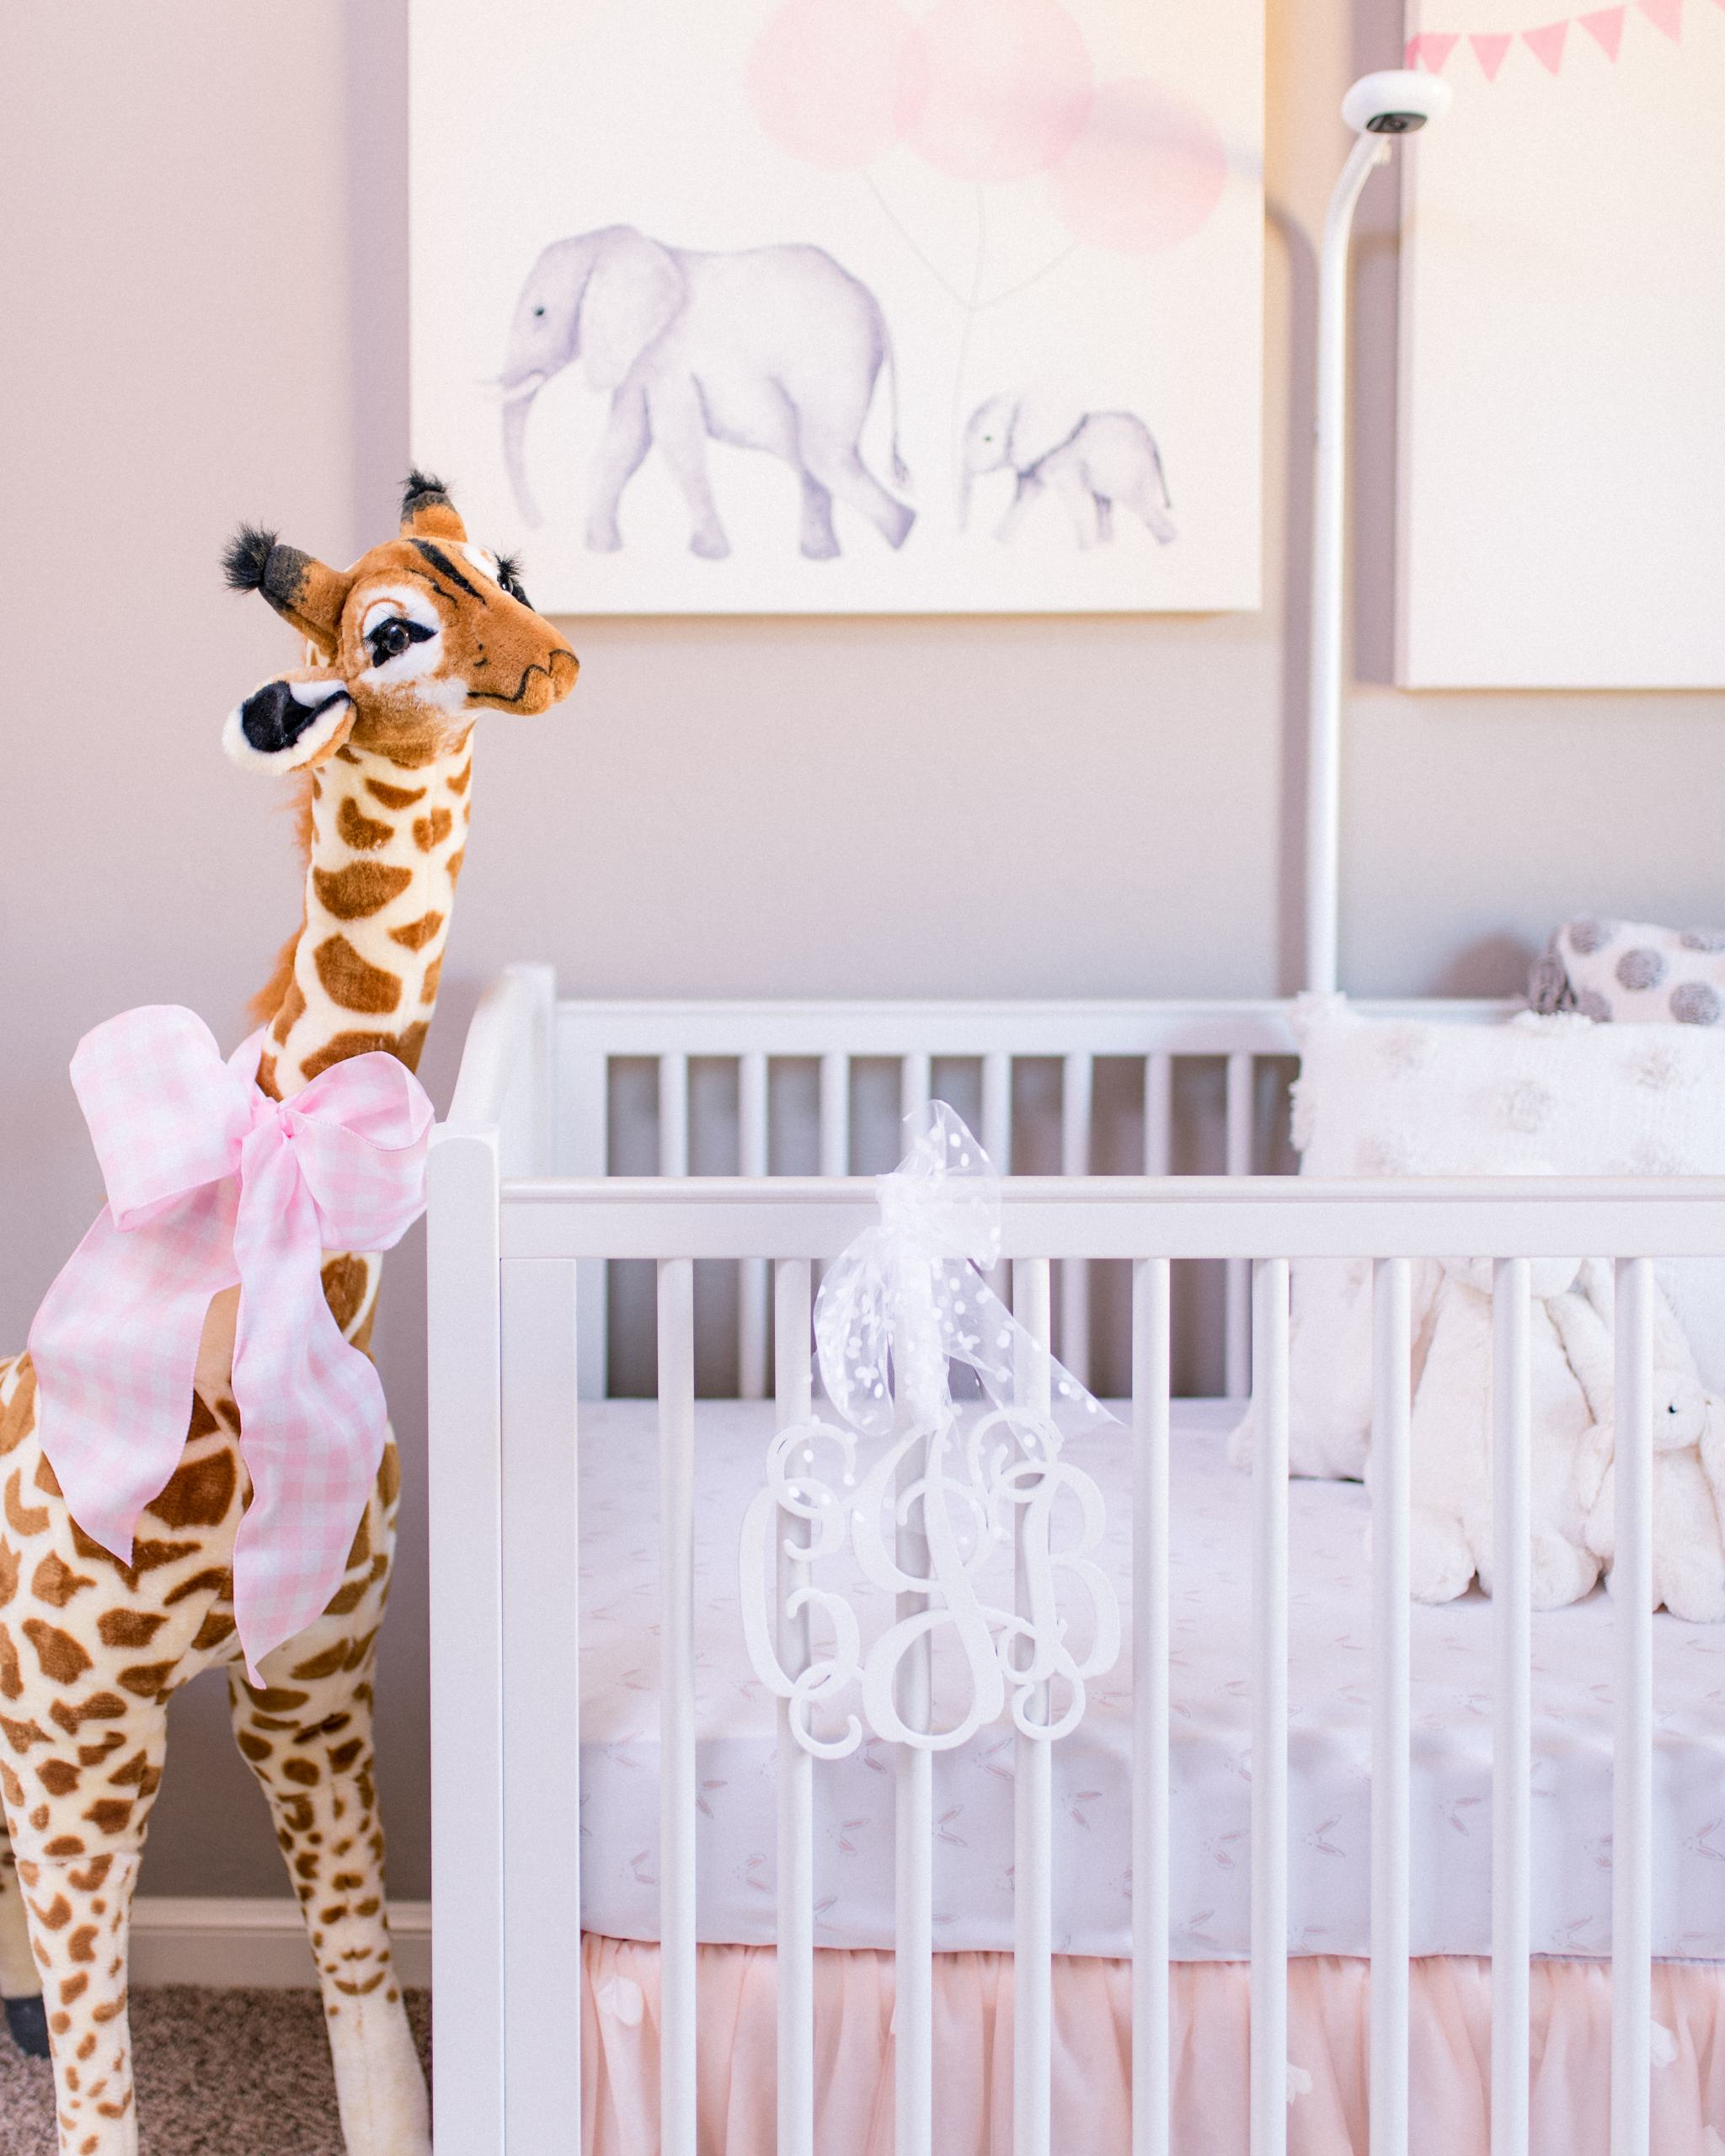 Charleston's Nursery Reveal